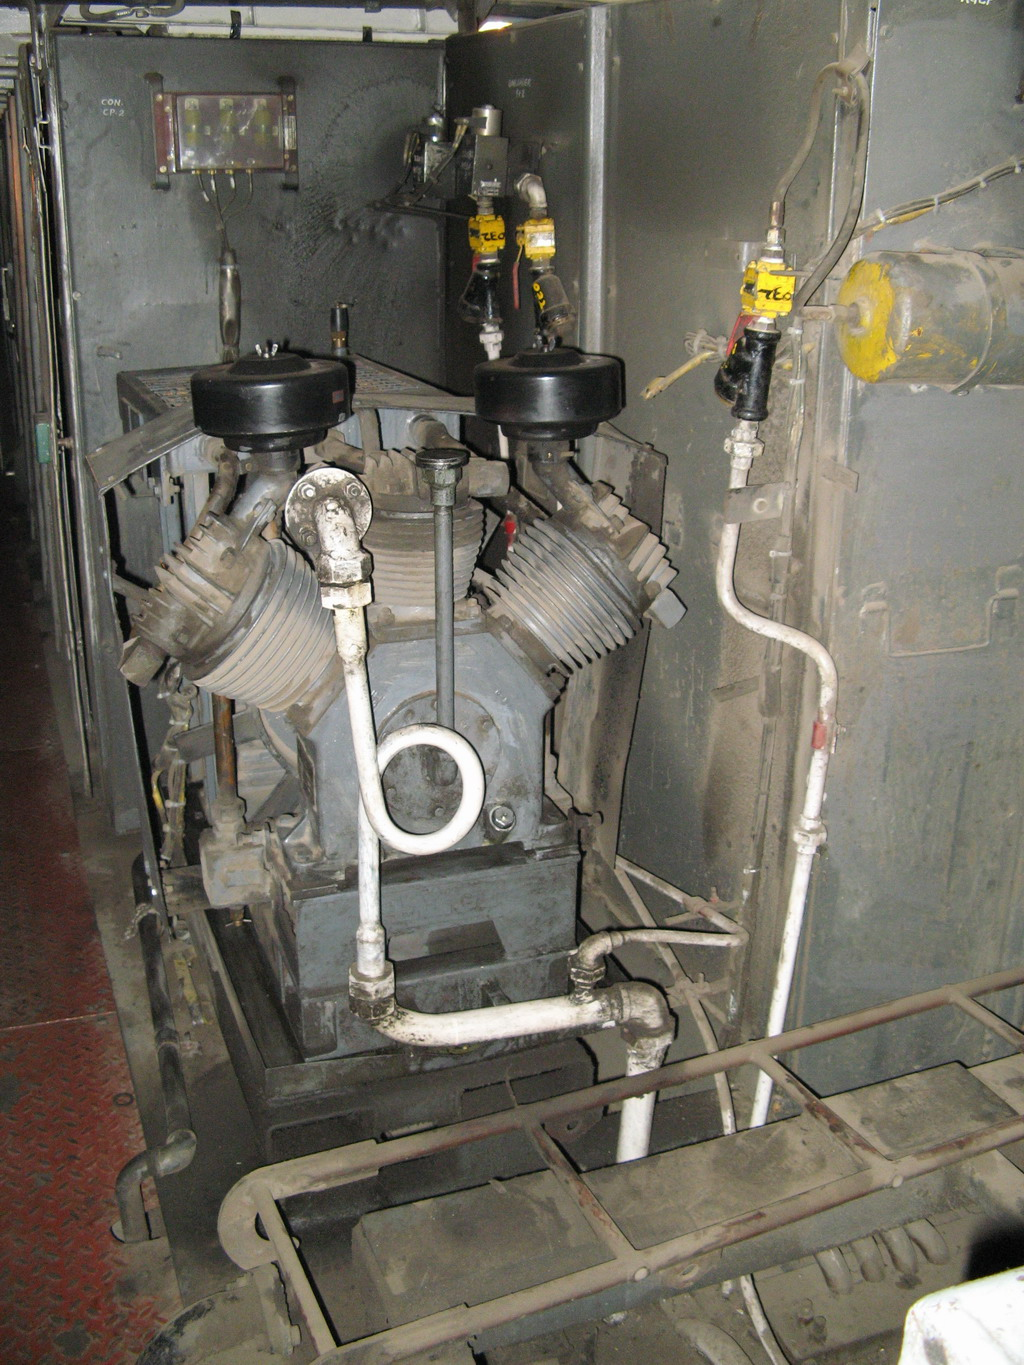 Vertical Multistage Pump Vertical Multistage Pump furthermore Researchlabscatequip further 529471 Aq131a With Petronix Electronic Ignition Wiring Question furthermore Ppk P Pressure Booster Pump Control Panels as well Magnum 1 5hp. on electric motor pump